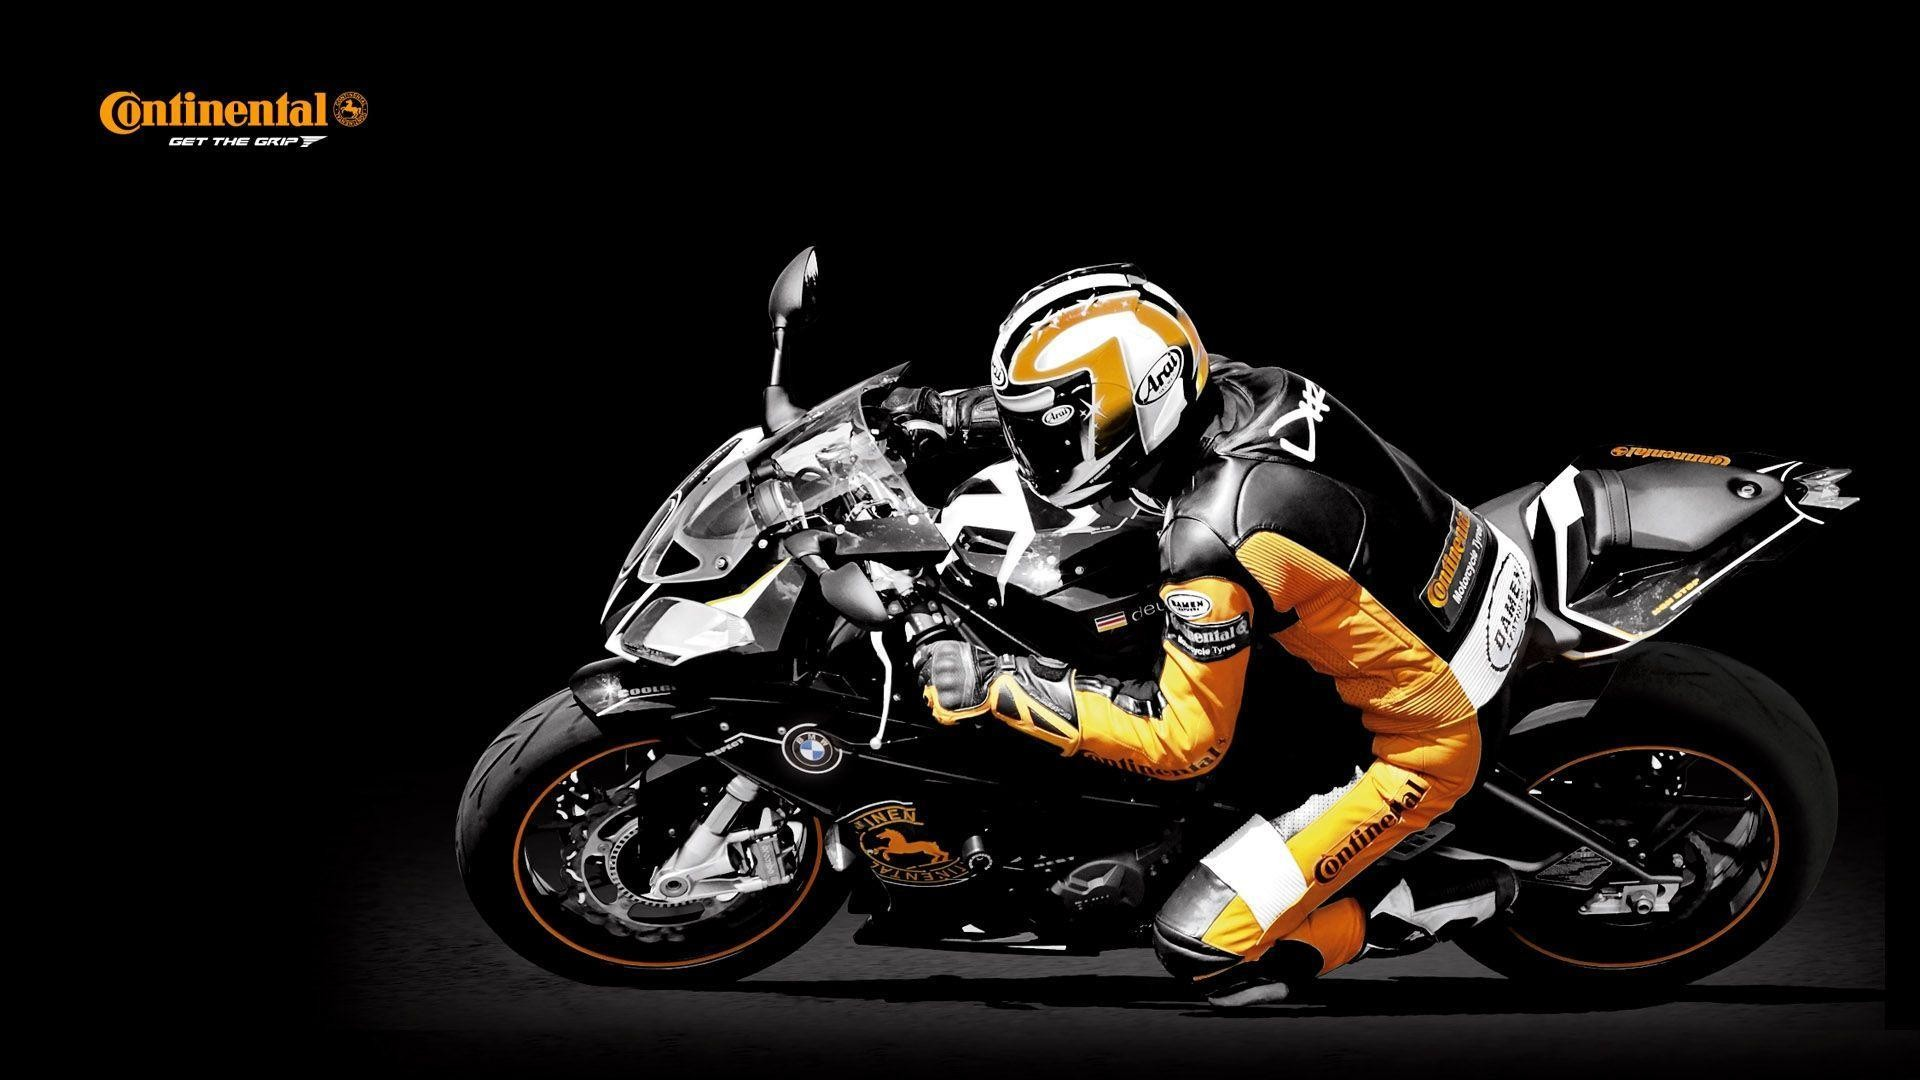 118 bmw motorcycle wallpaper bmw s1000rr contisportattack 2 fhd